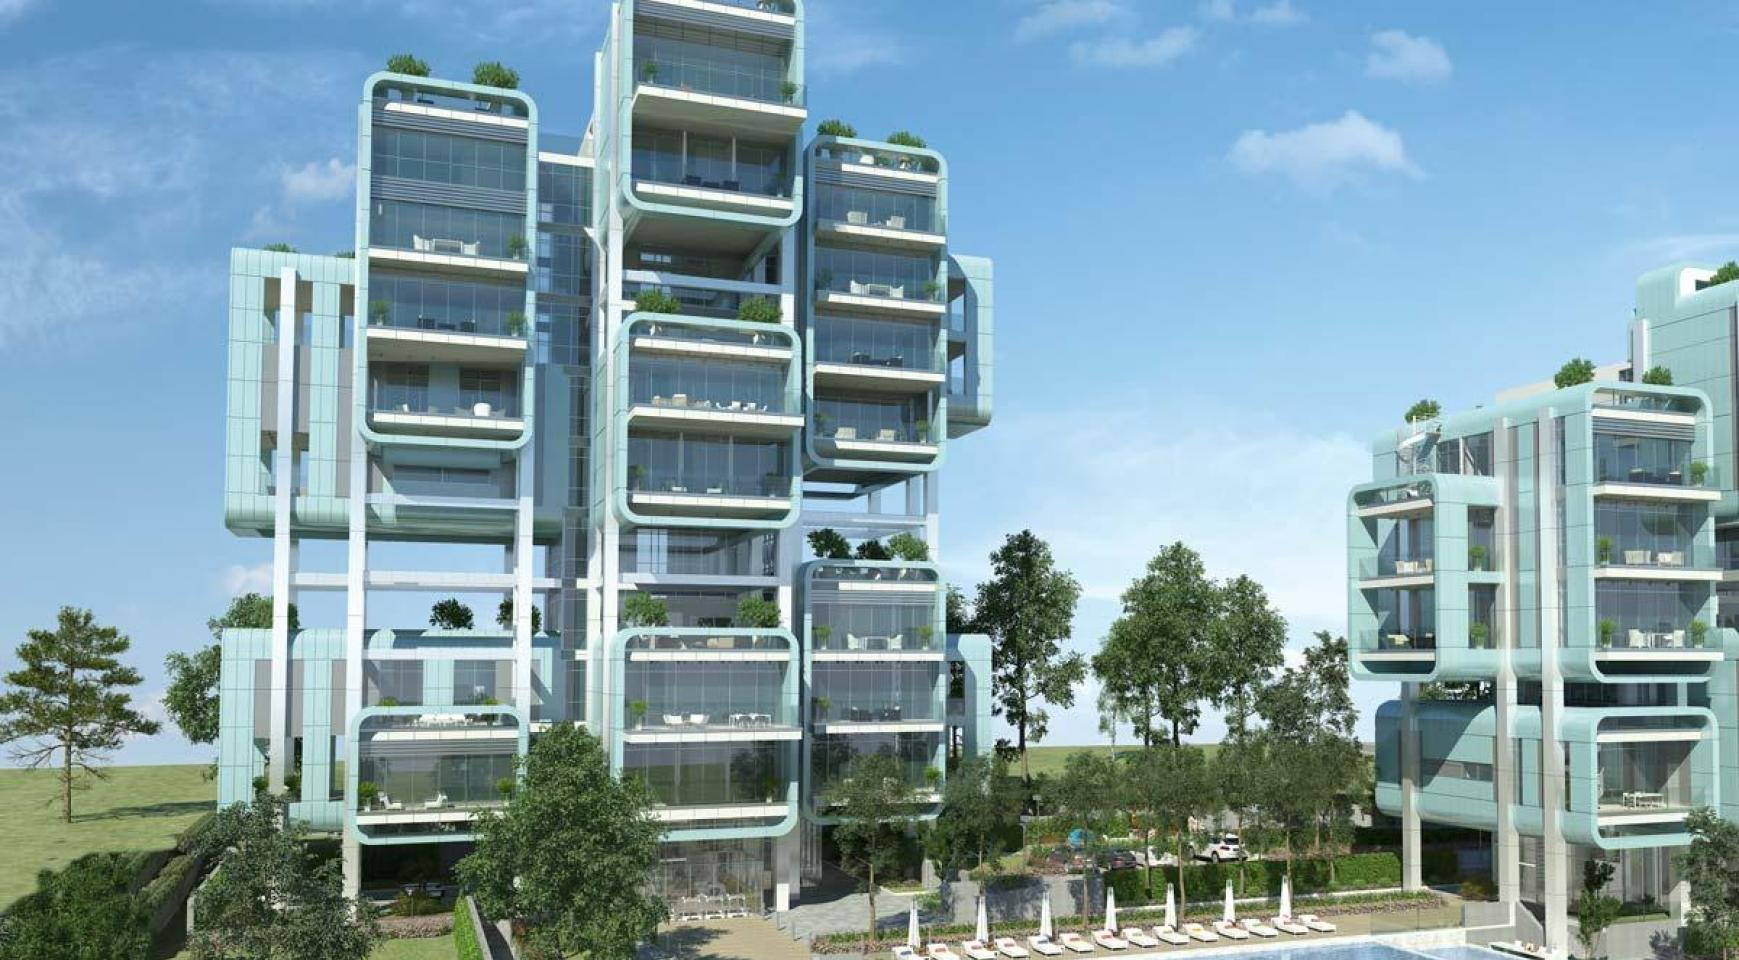 Elite 2 Bedroom Apartment with Roof Garden within a New Complex - 31